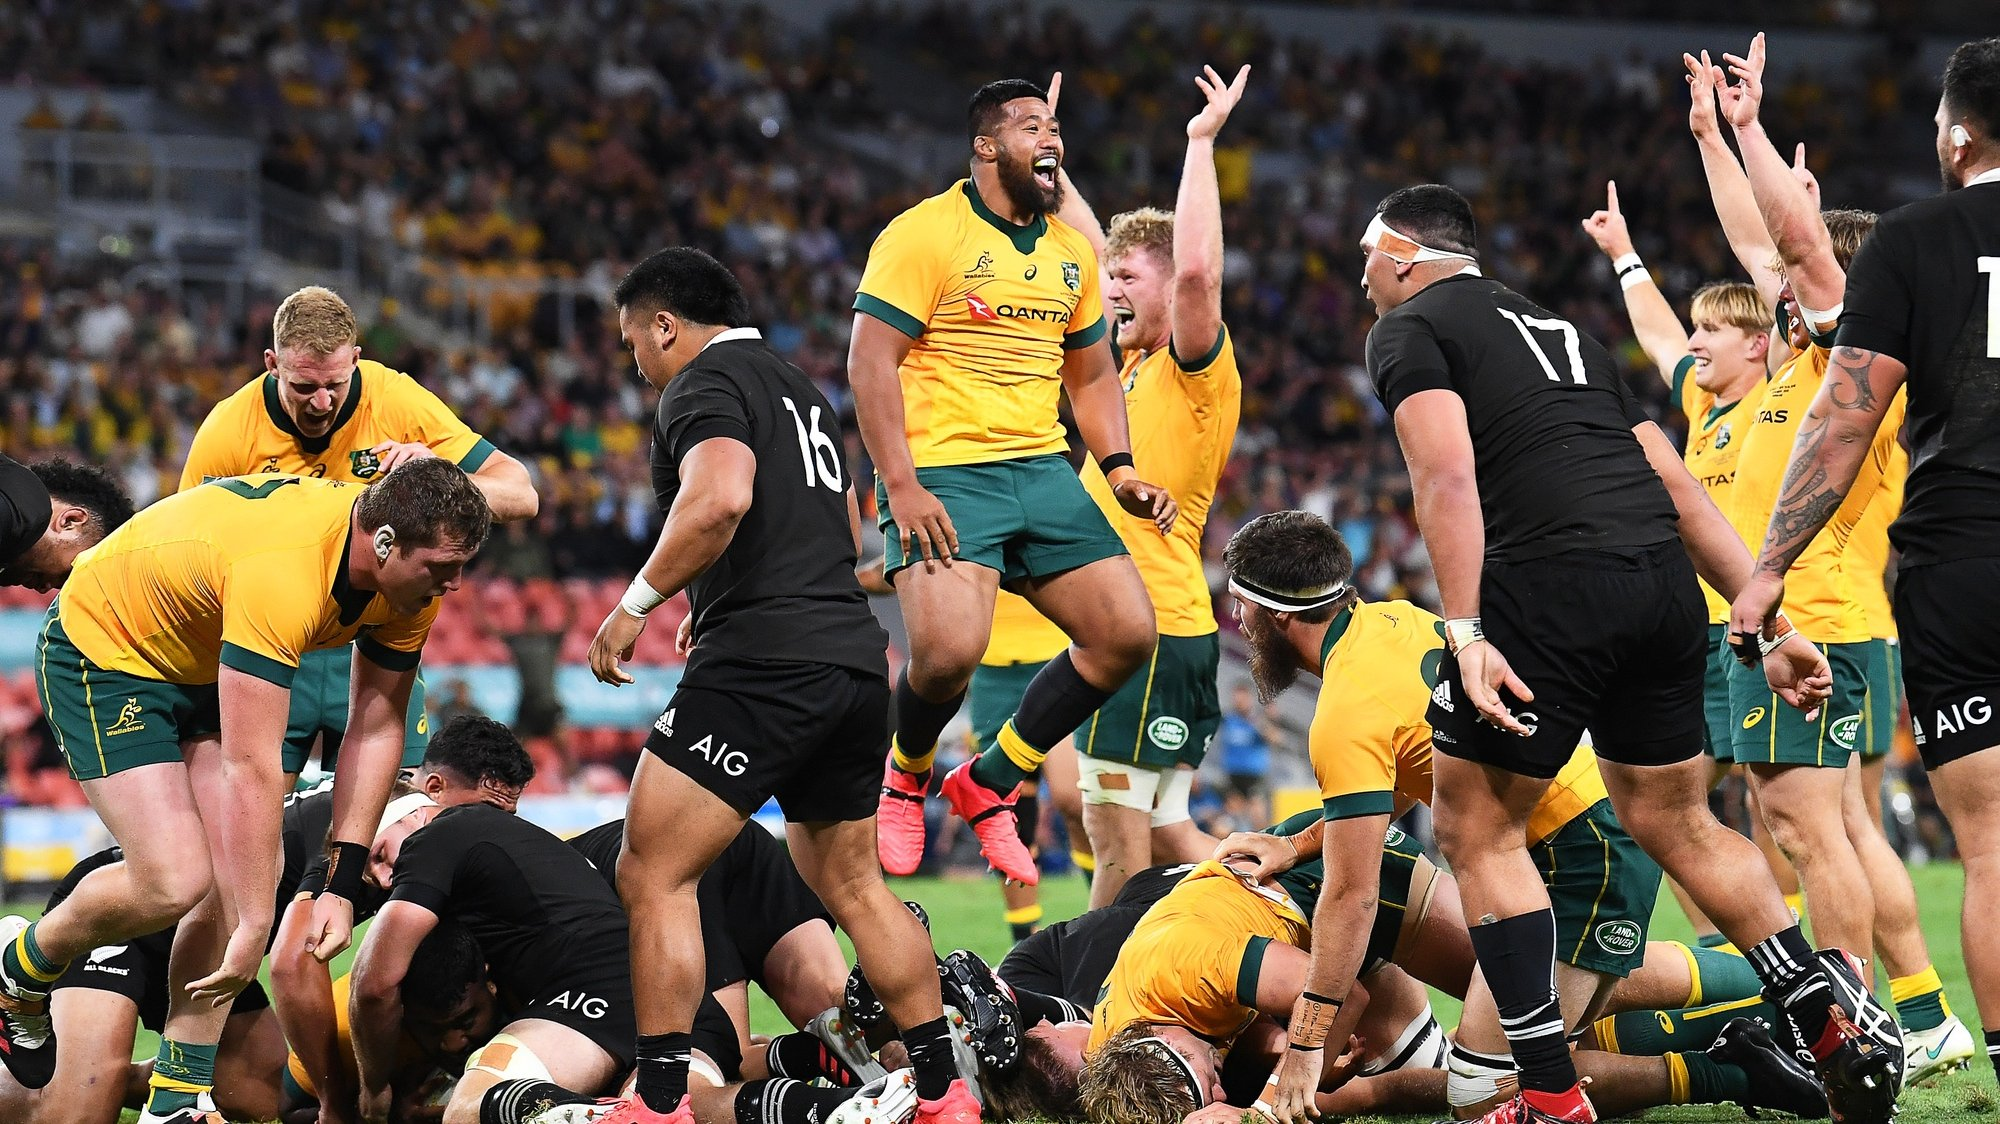 epa08804288 Taniela Tupou (C) of the Wallabies celebrates after scoring a try during the Tri Nations rugby union match between the Australian Wallabies and the New Zealand All Blacks in Brisbane, Australia, 07 November 2020.  EPA/DAVE HUNT AUSTRALIA AND NEW ZEALAND OUT